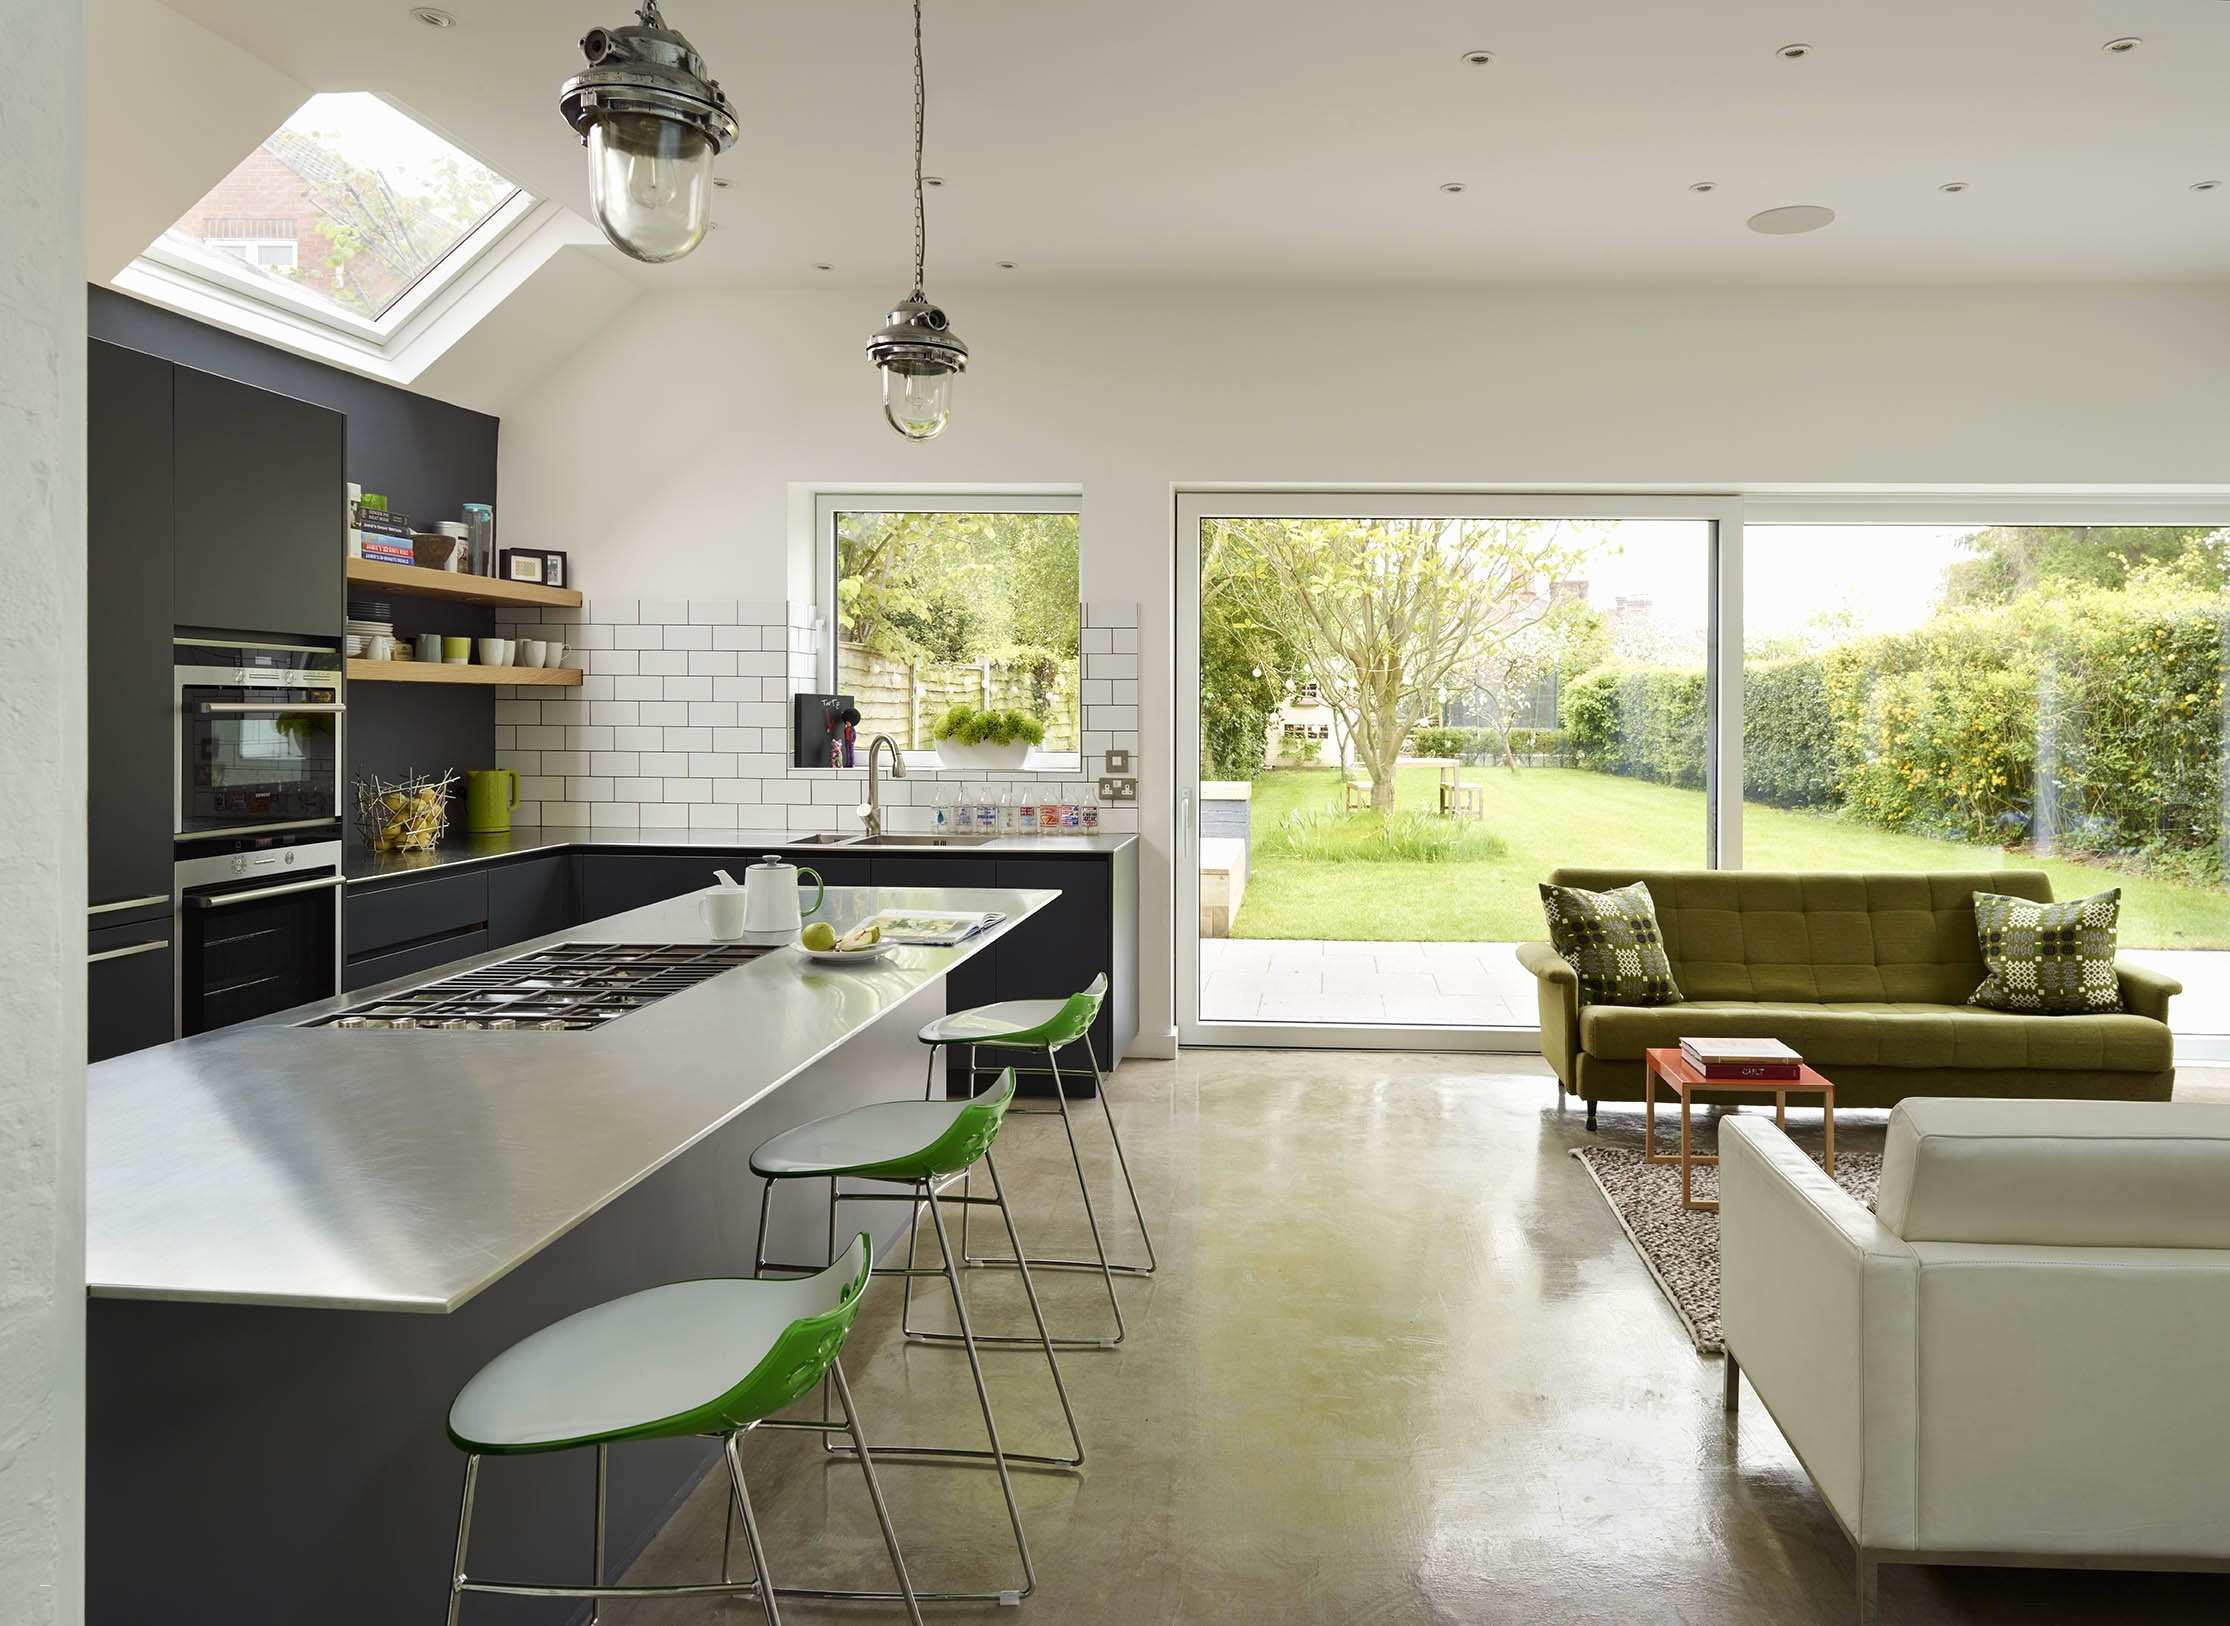 30 Inspirational Kitchen Remodel Gallery